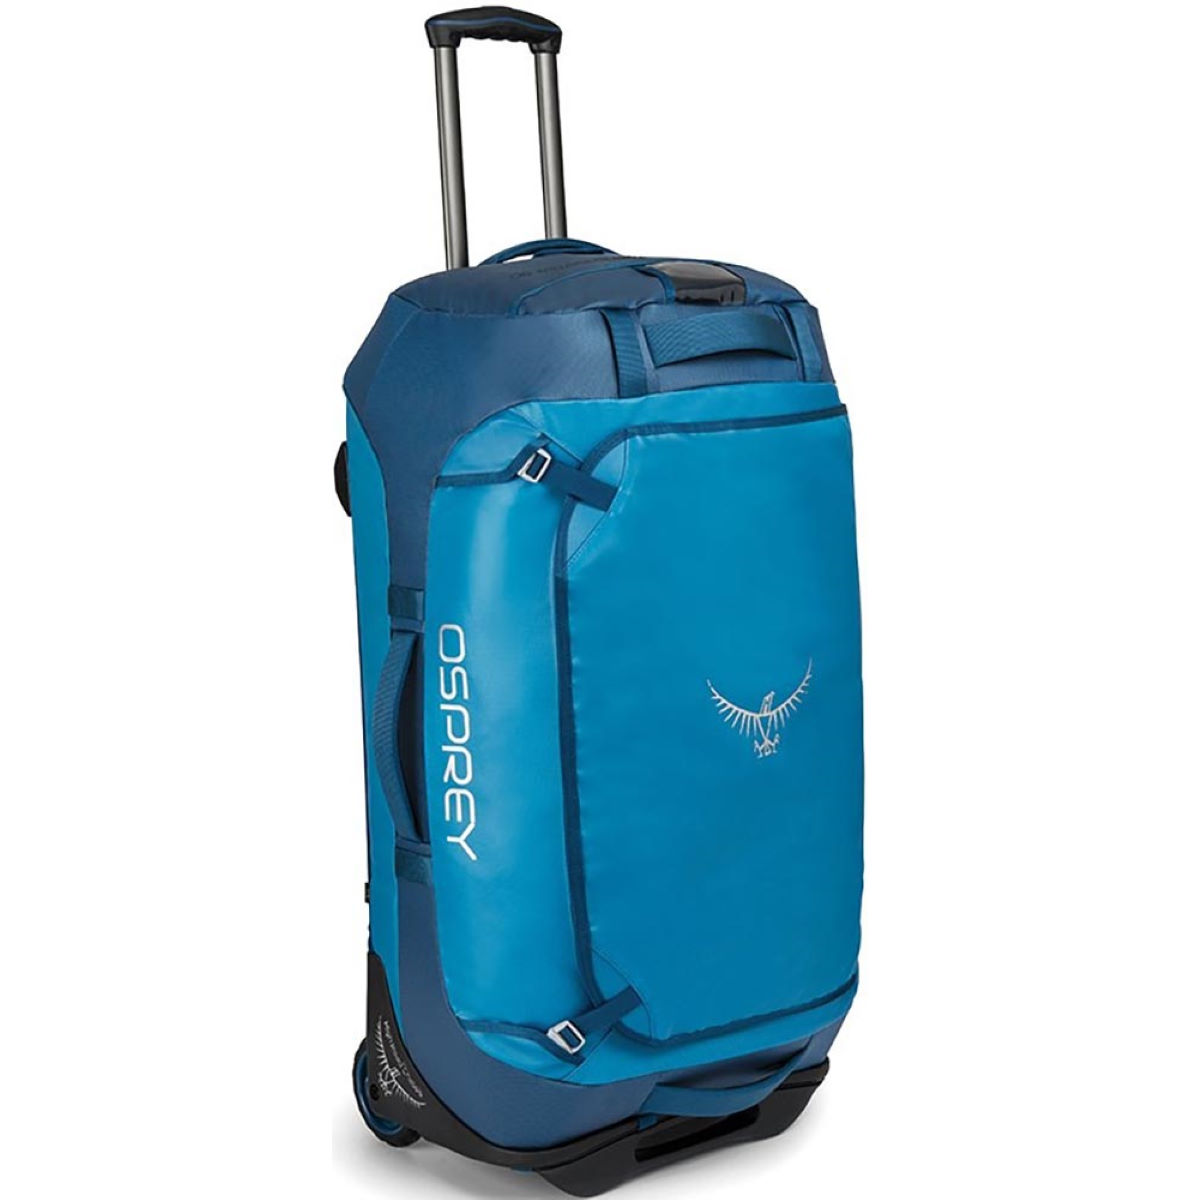 Osprey Osprey Rolling Transporter Travel Bag   Travel Bags